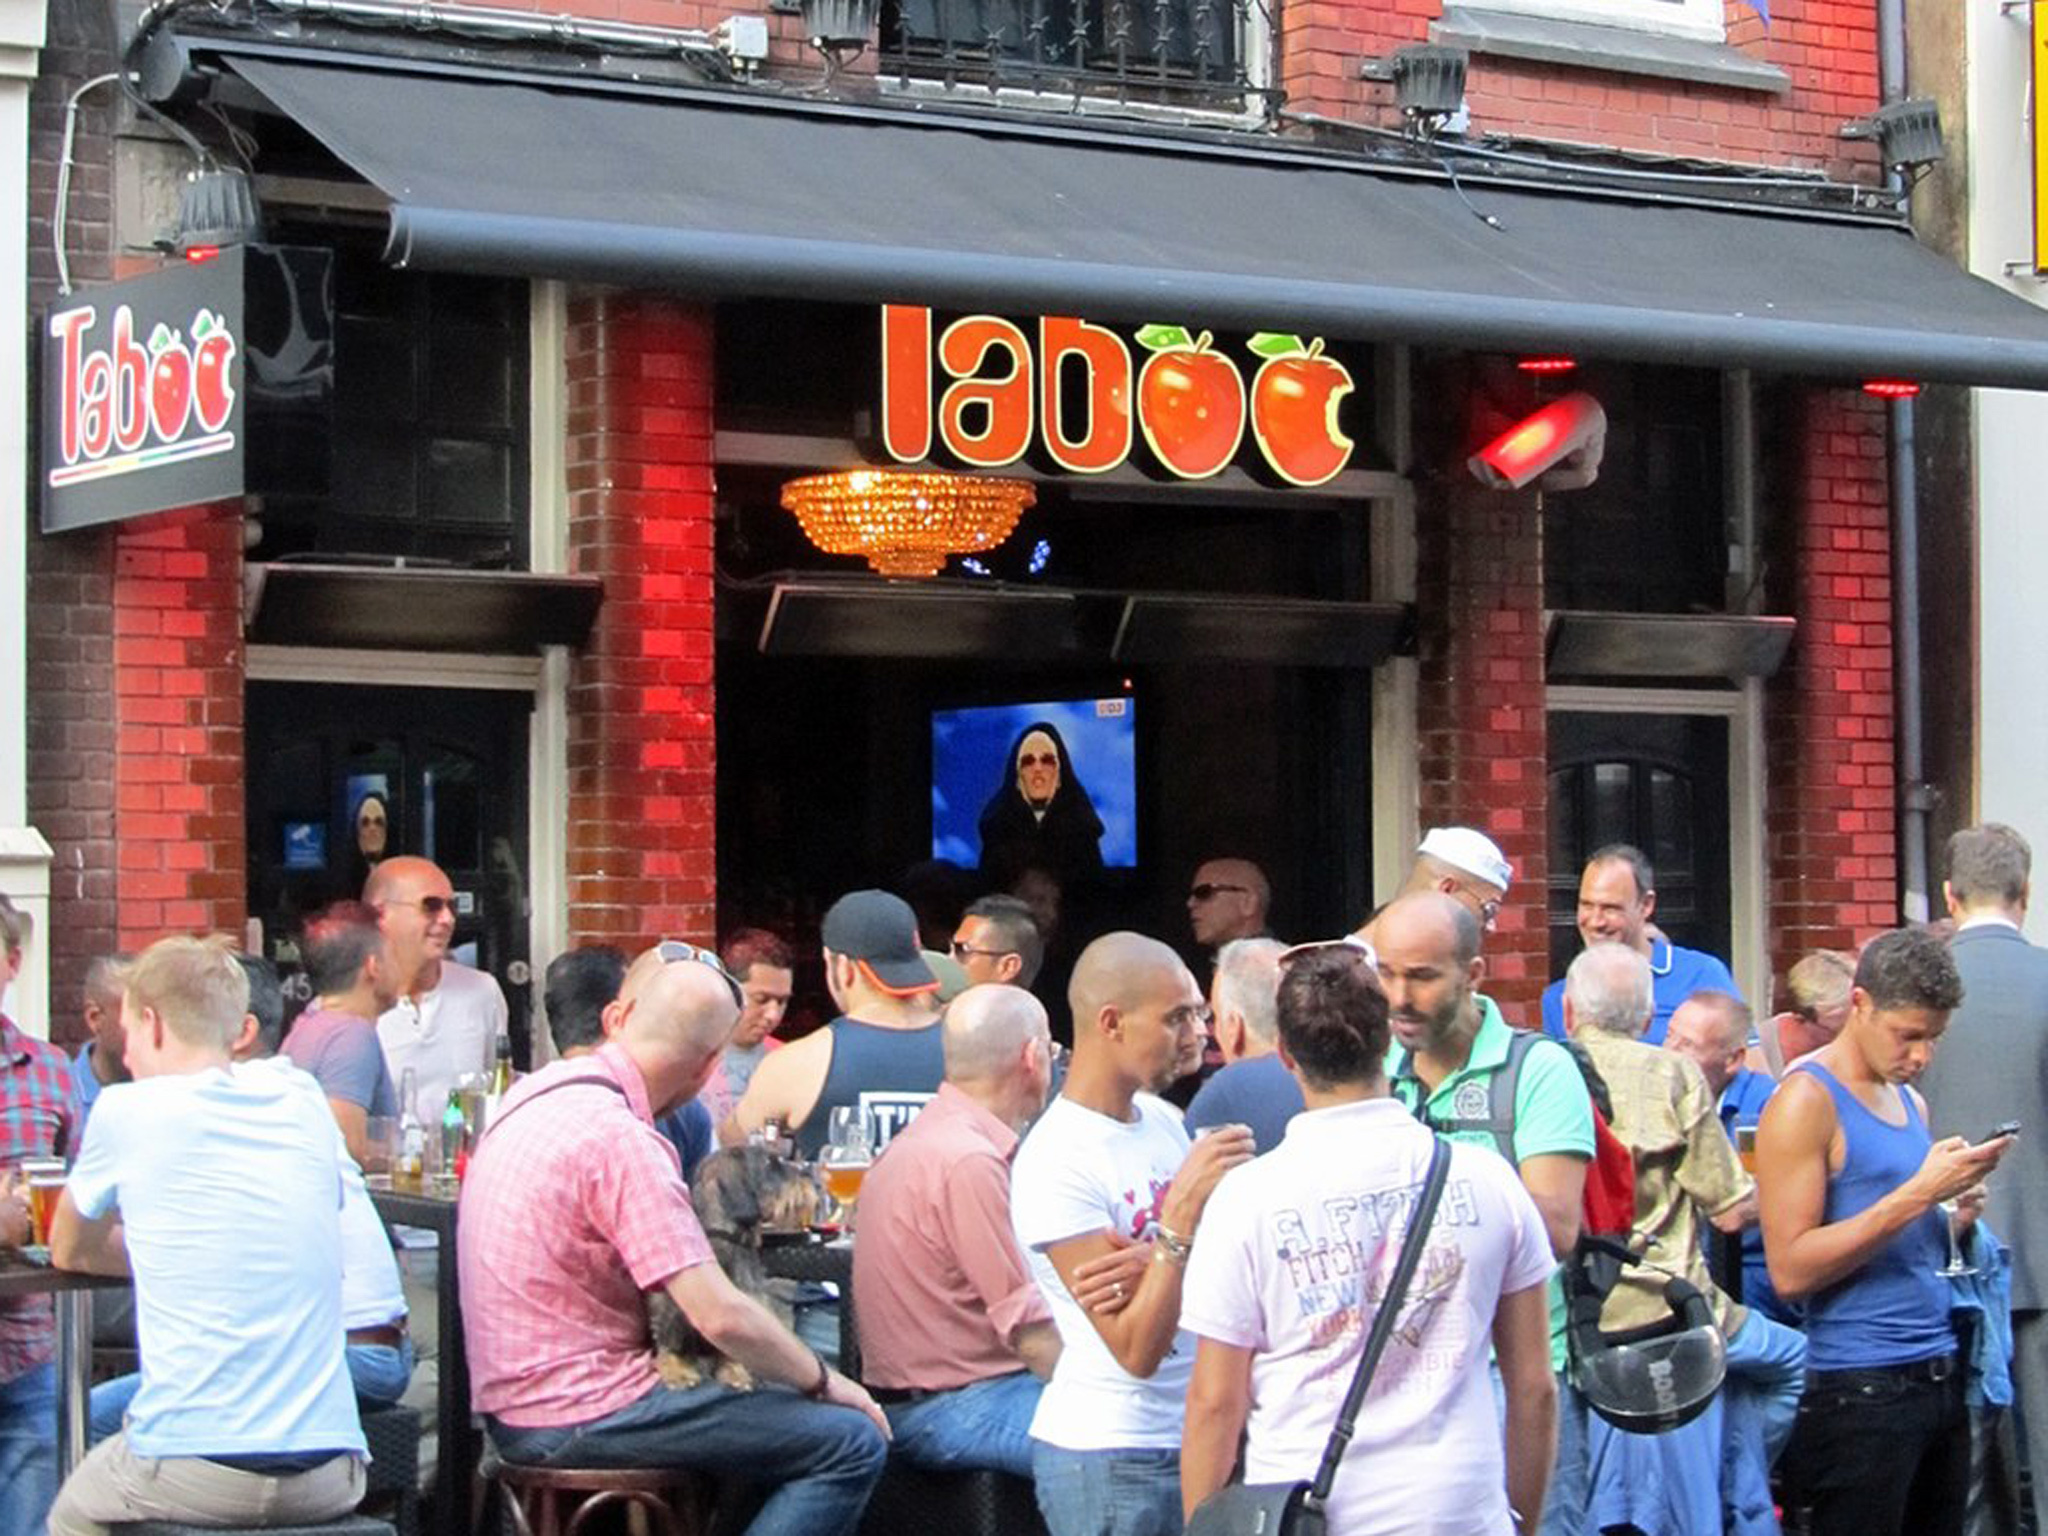 A crowd outside gay club Taboo in Amsterdam